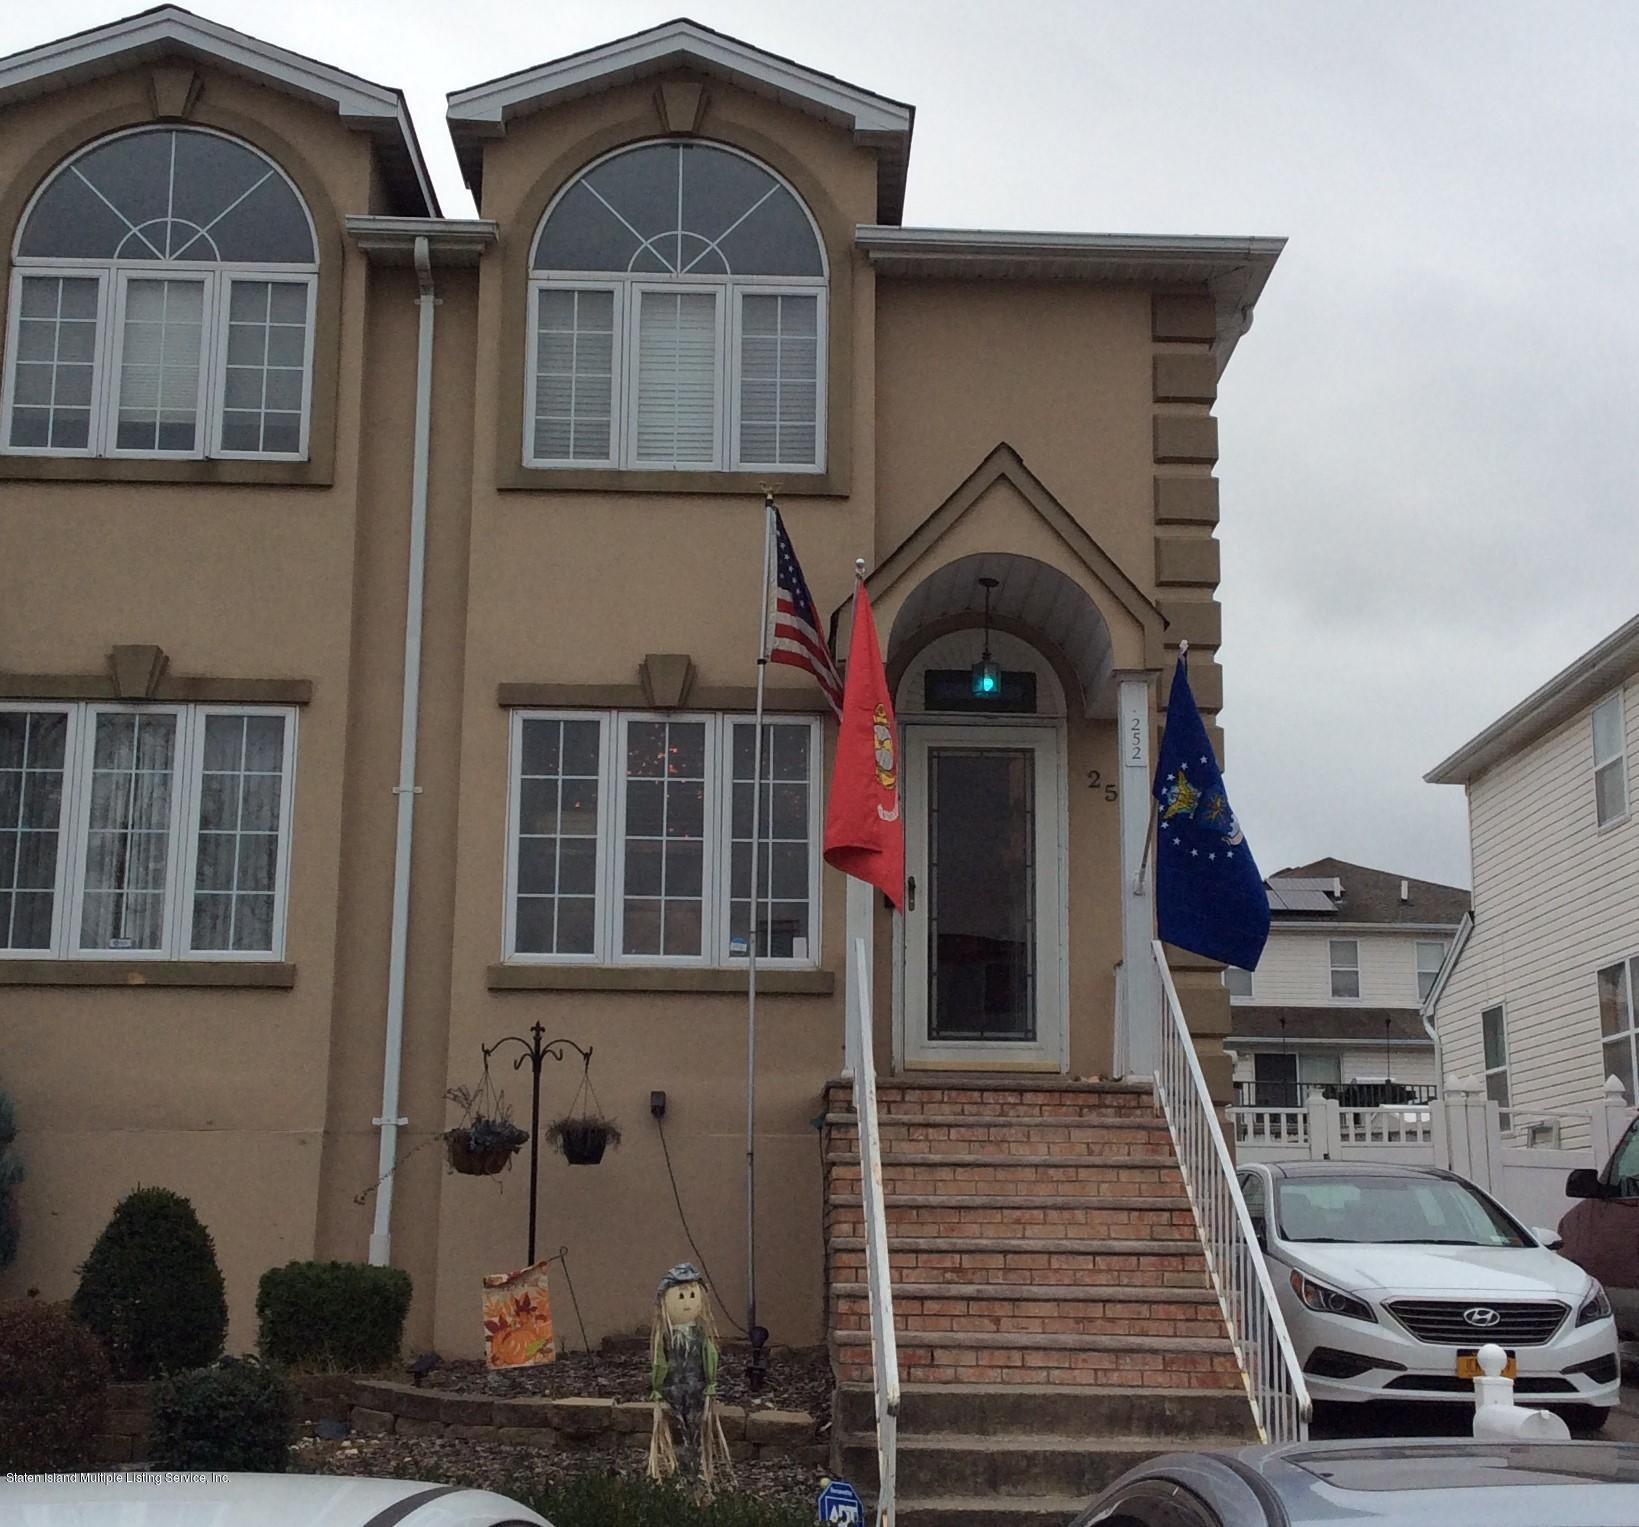 252 Candon Avenue,Staten Island,New York,10309,United States,3 Bedrooms Bedrooms,7 Rooms Rooms,3 BathroomsBathrooms,Residential,Candon,1133938